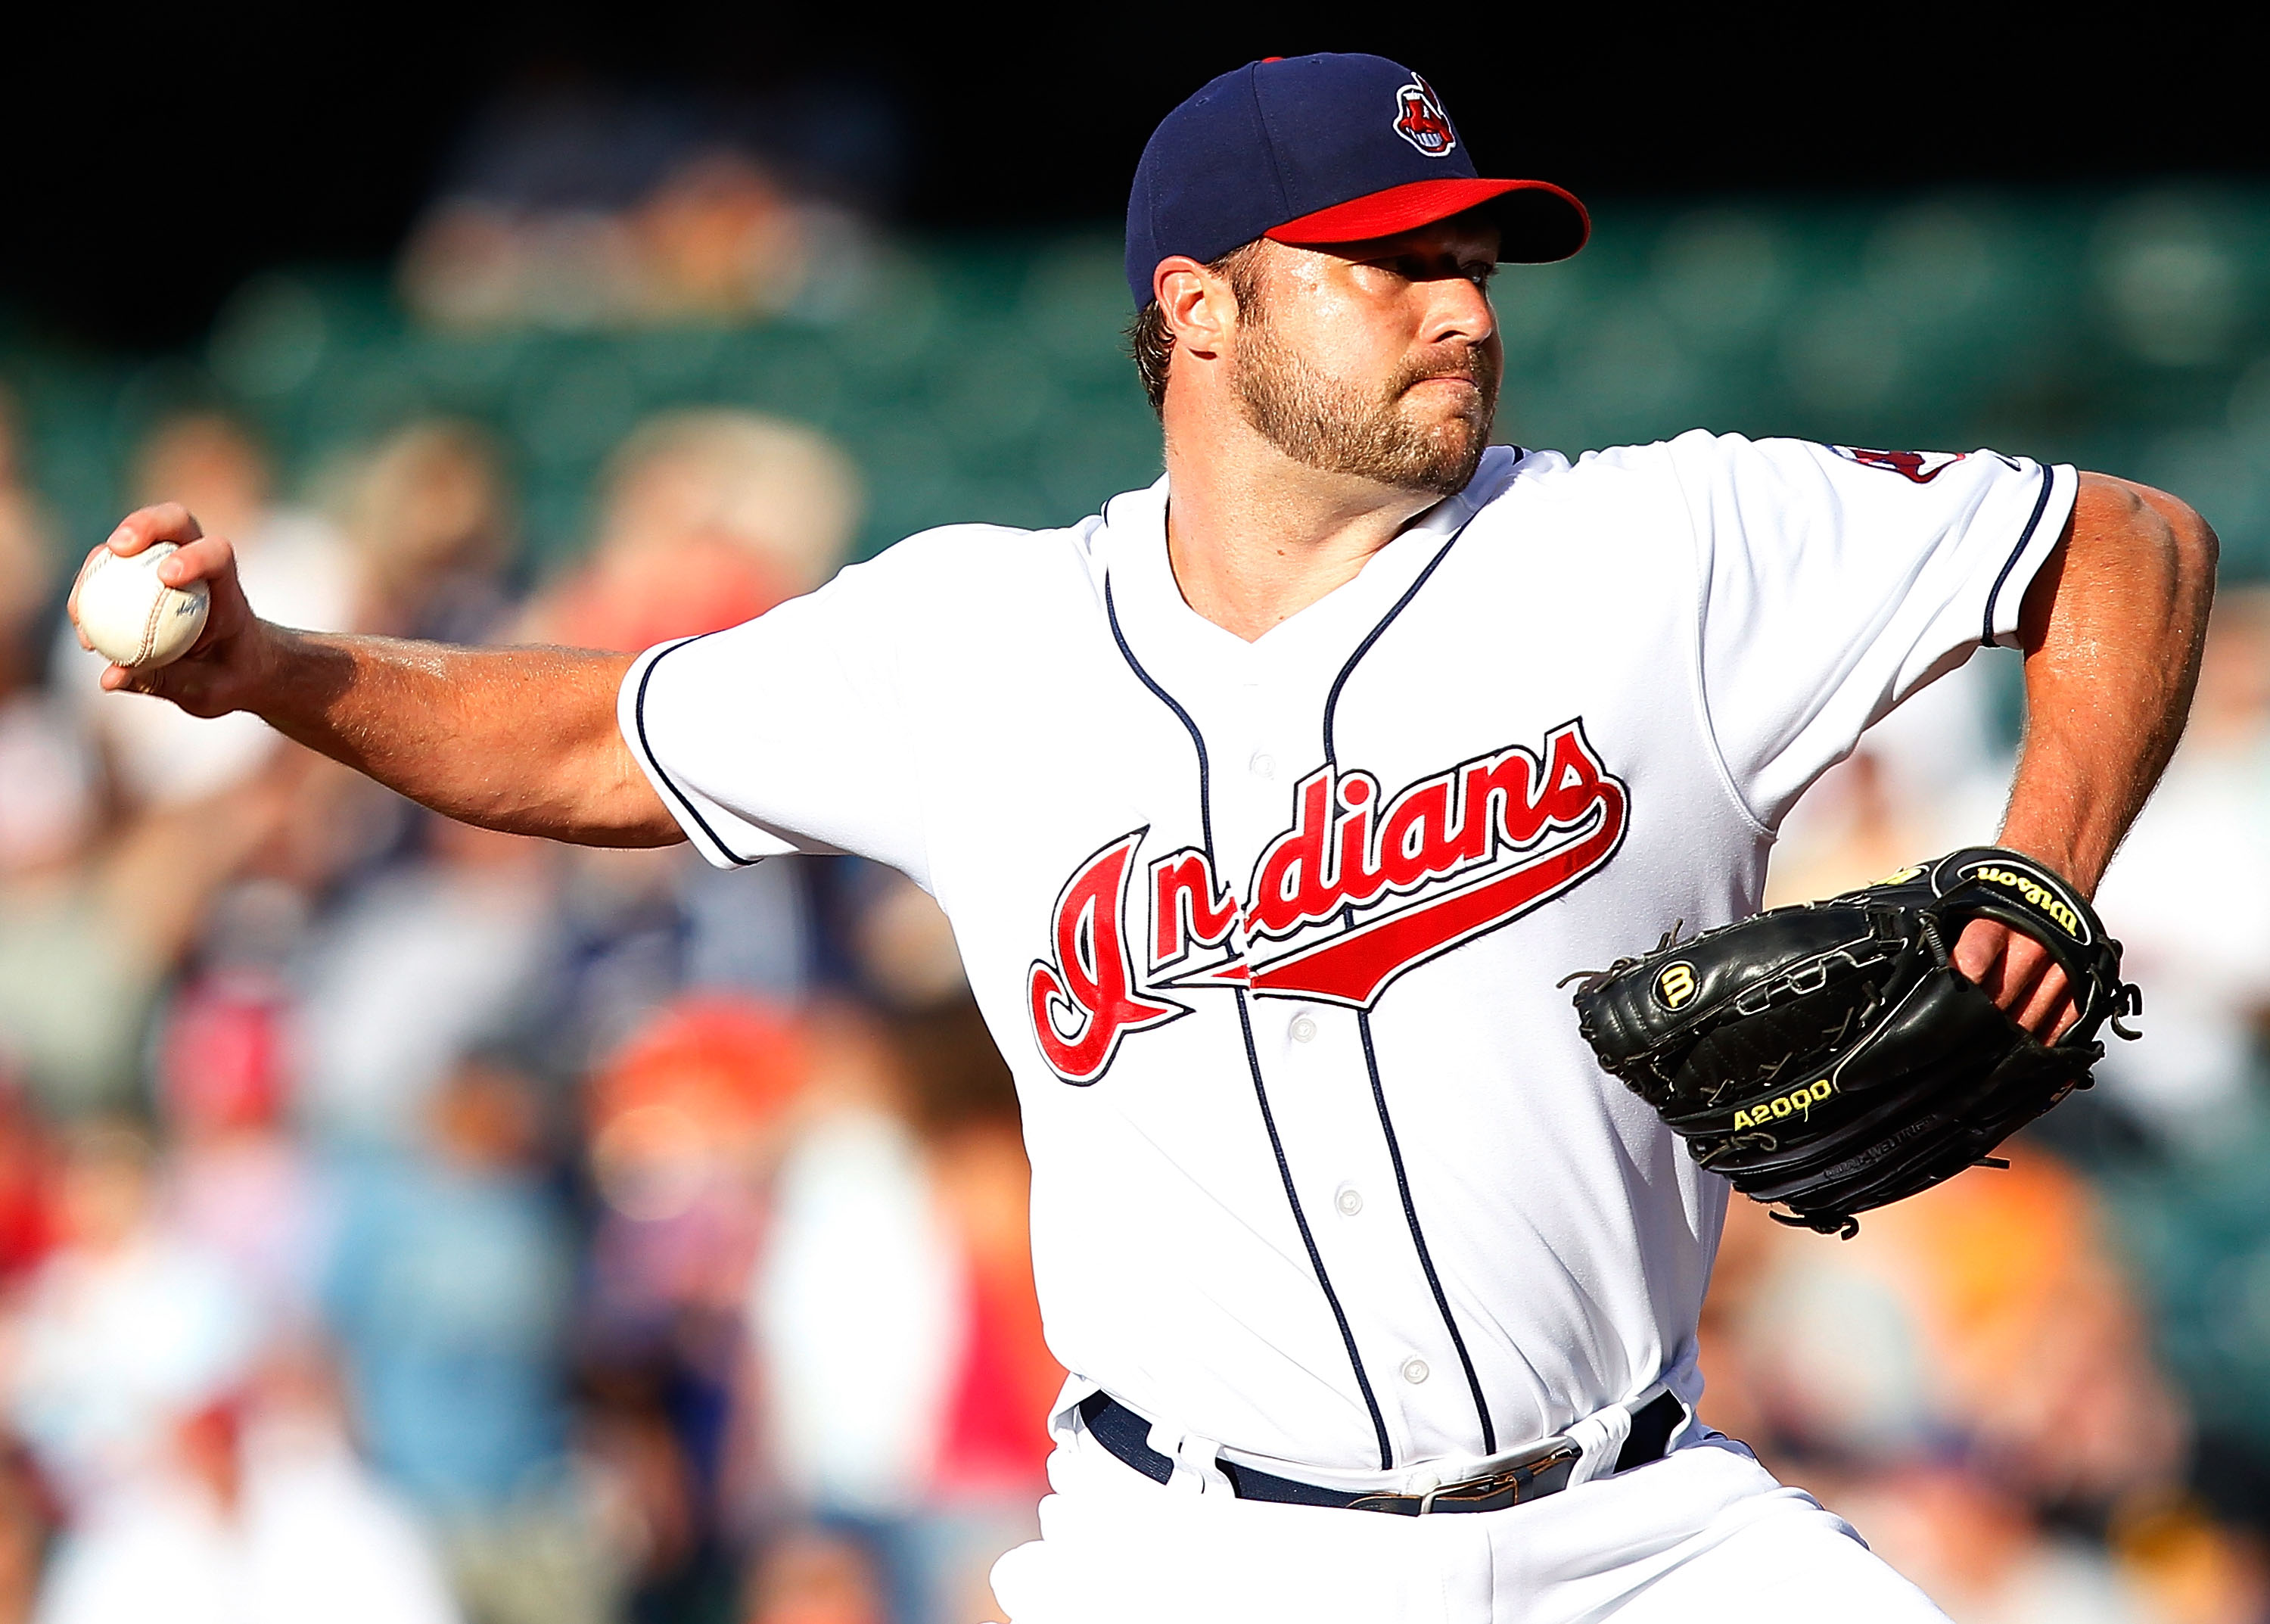 CLEVELAND - JUNE 17:  Jake Westbrook #37 of the Cleveland Indians pitches against the New York Mets during the game on June 17, 2010 at Progressive Field in Cleveland, Ohio.  (Photo by Jared Wickerham/Getty Images)